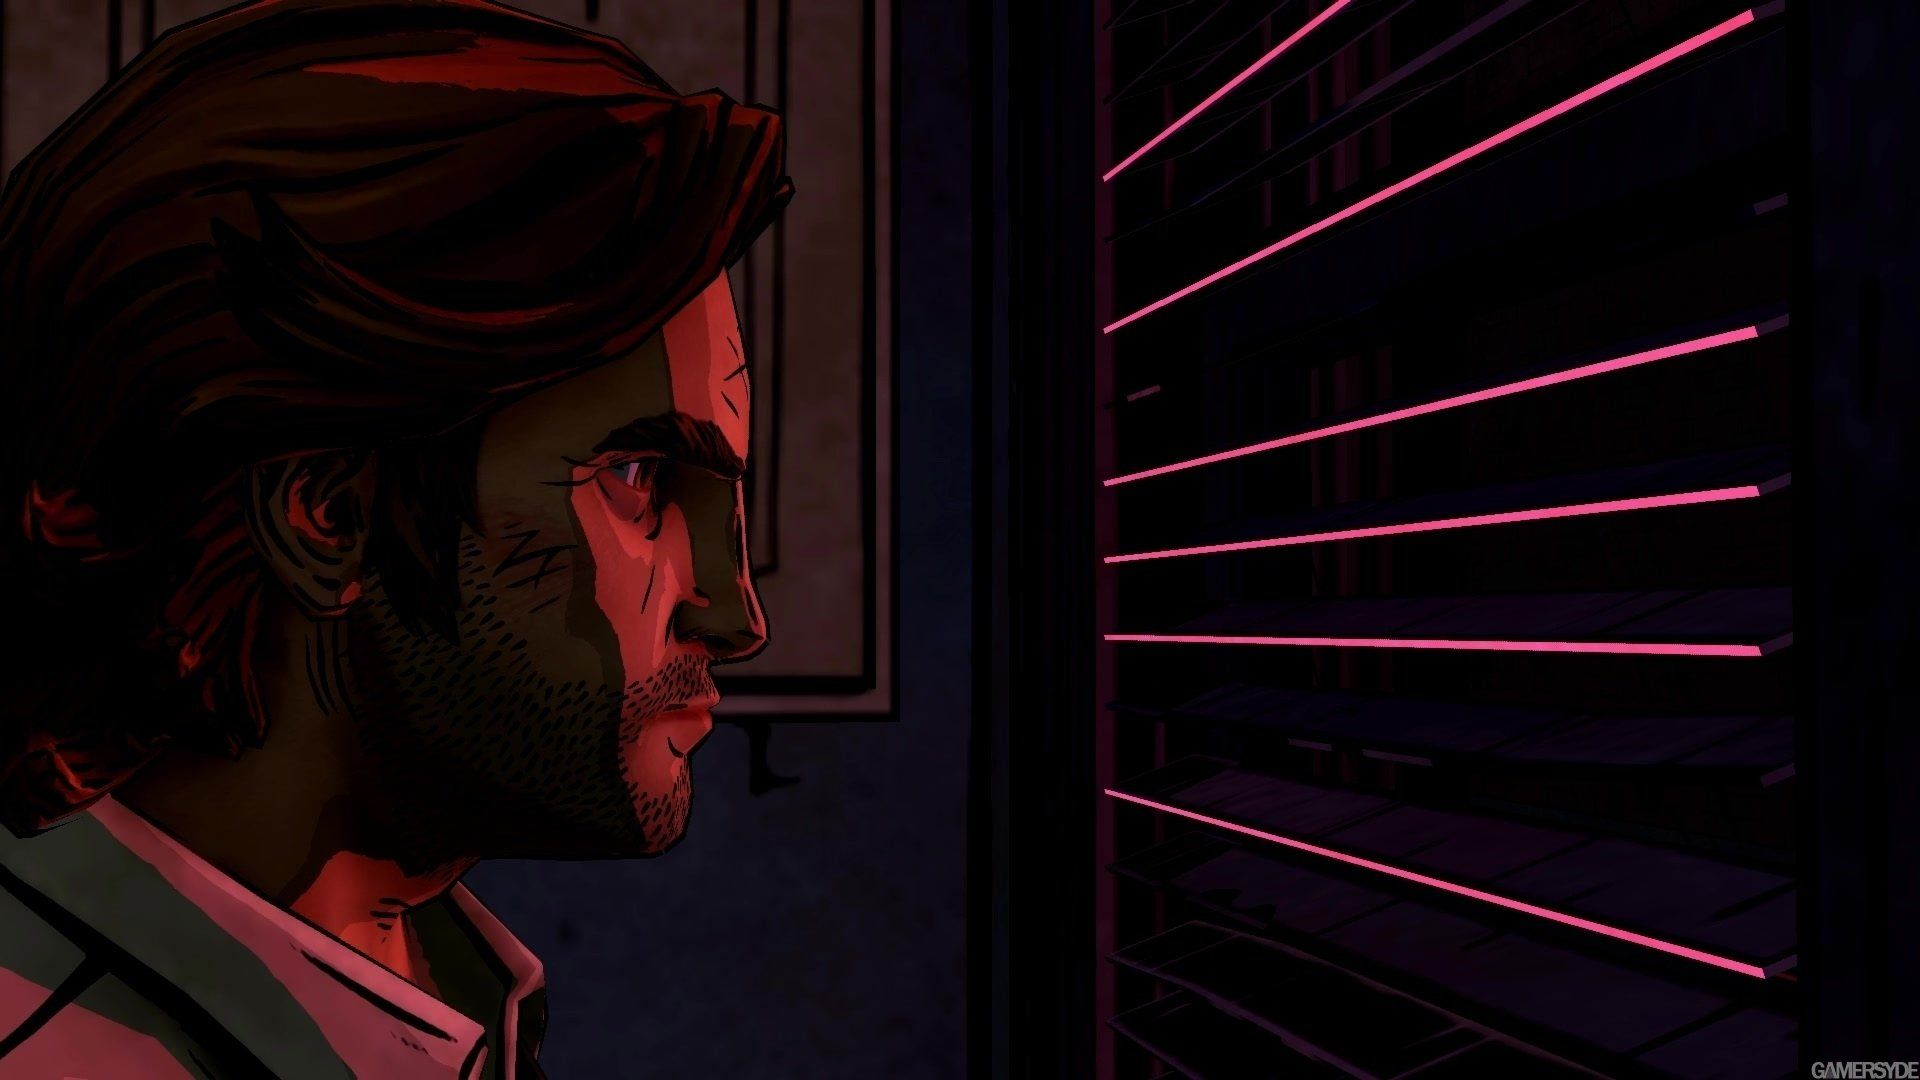 The Wolf Among Us Hd Wallpapers 14 1920 X 1080 The Wolf Among Us Neon Noir Fairy Tales